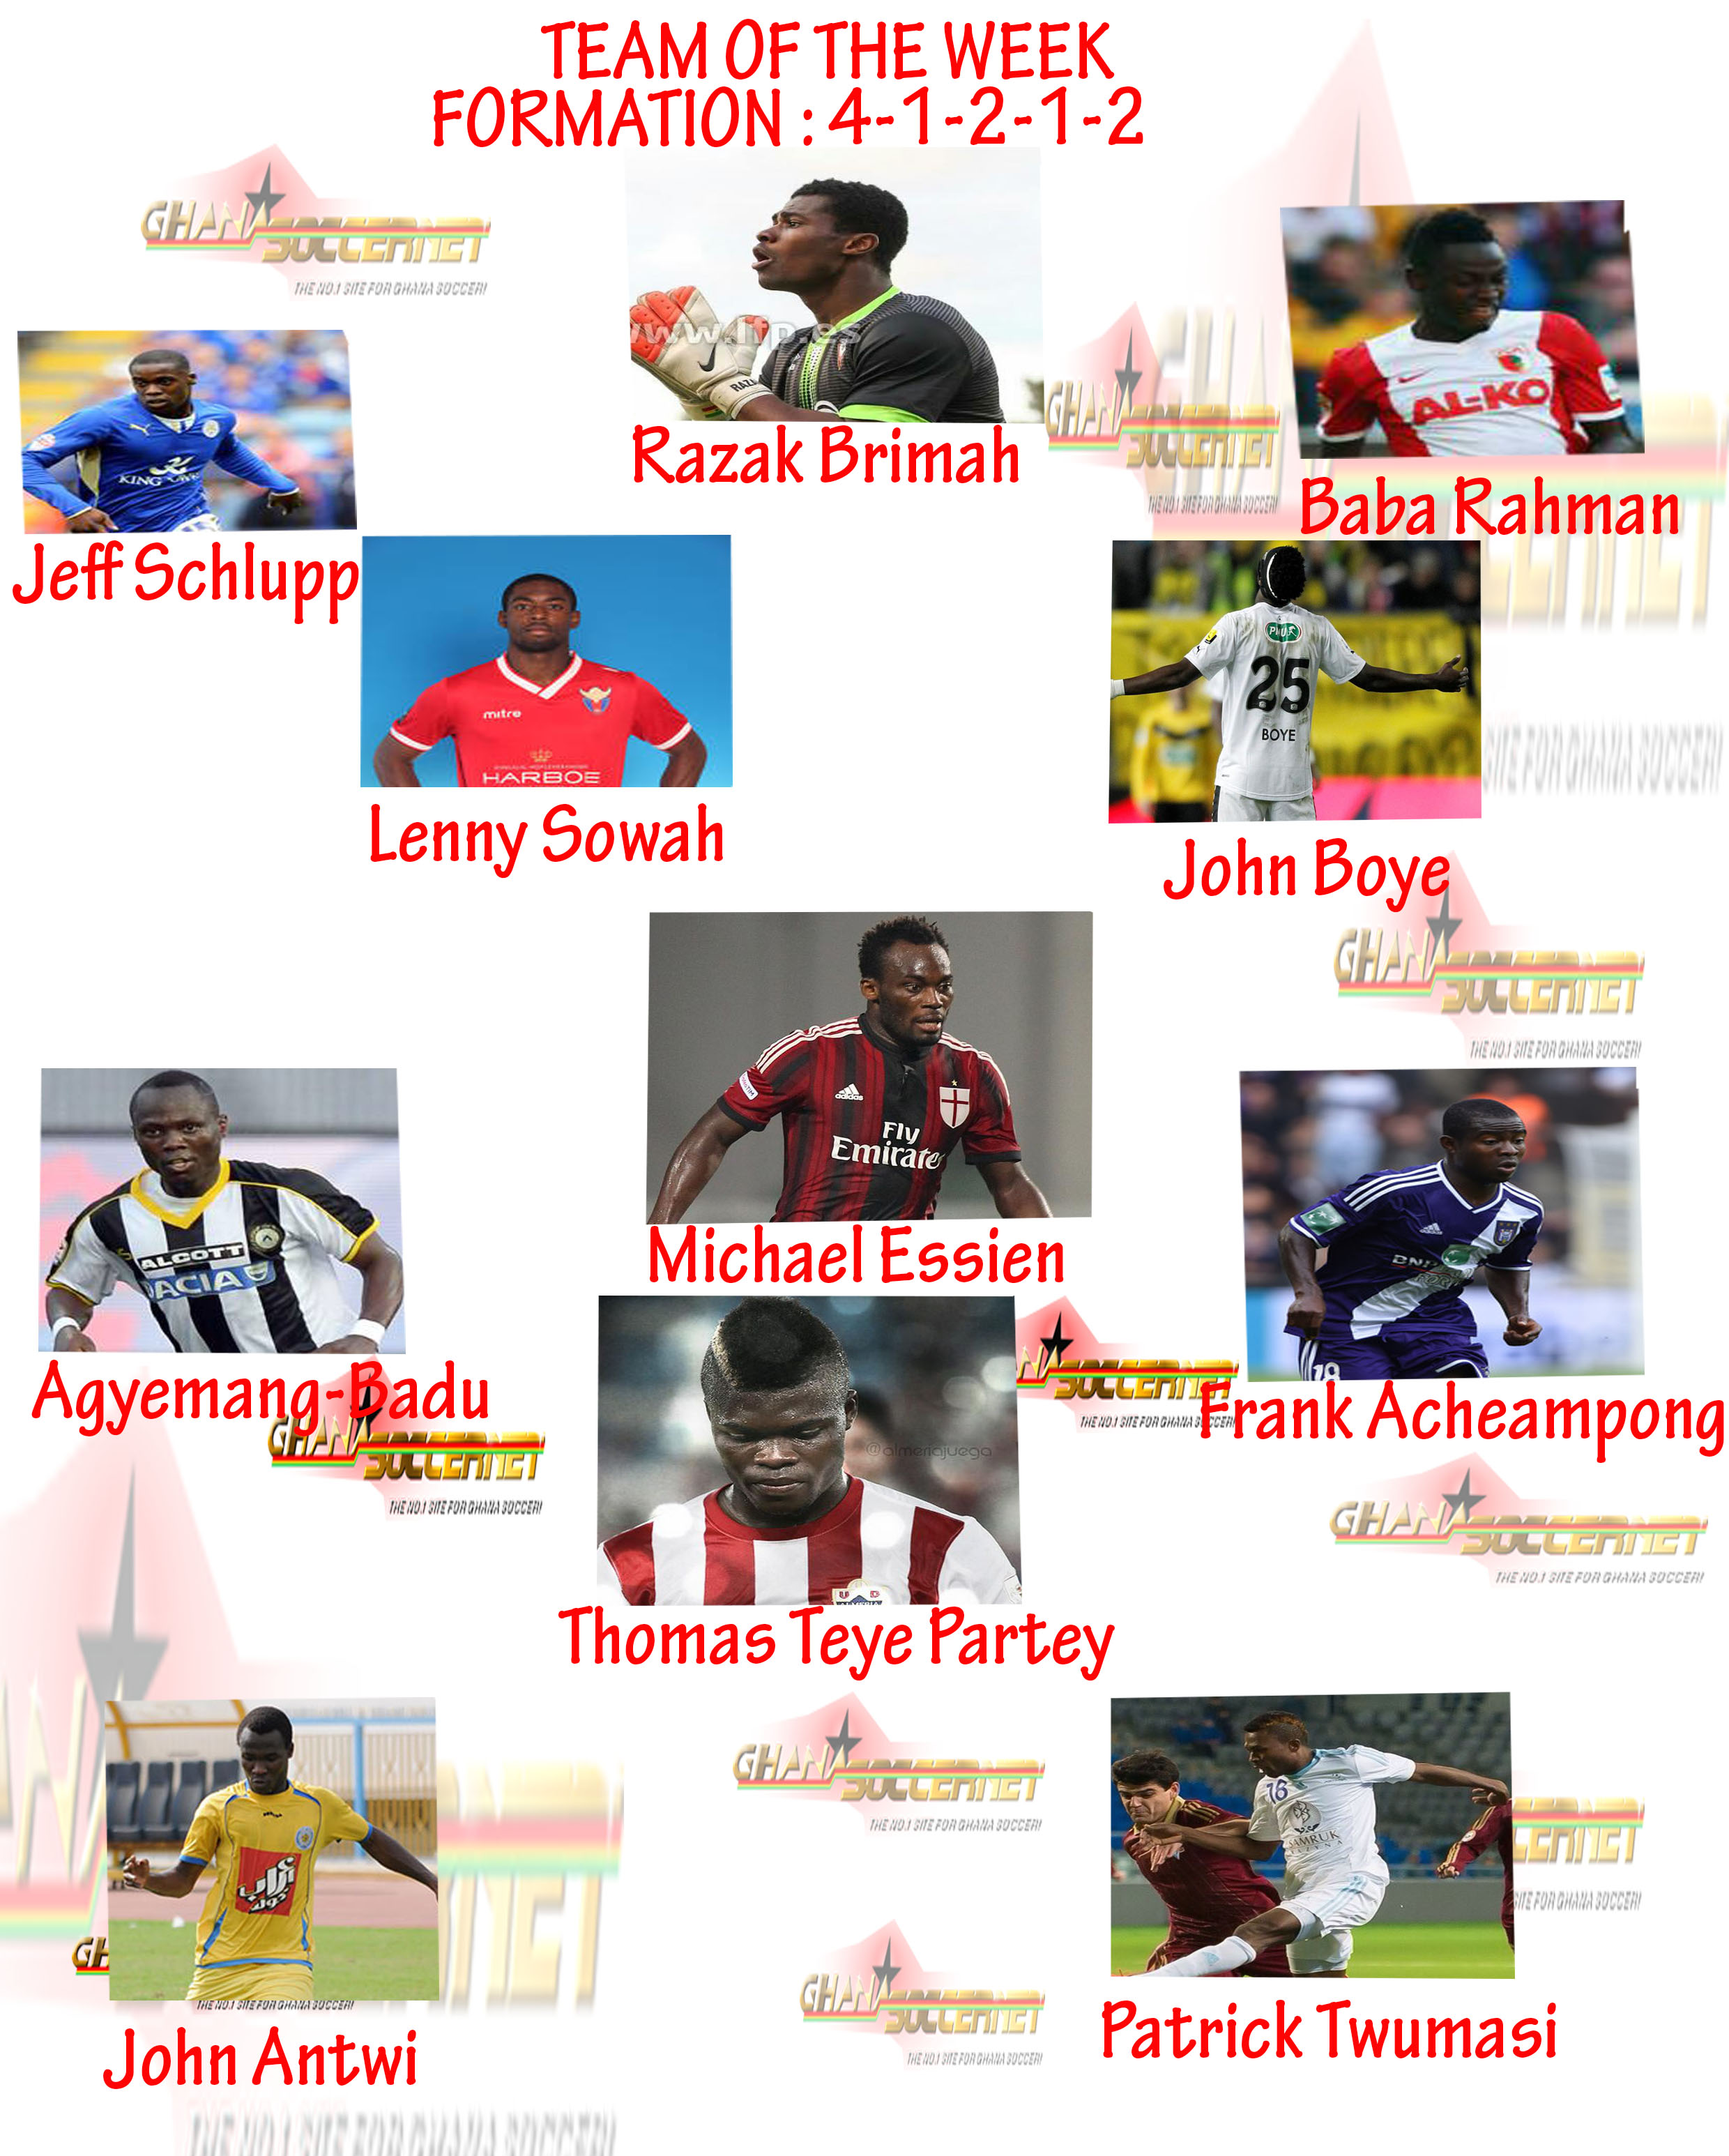 GSN-GTV Sports Plus' team of the week: Sowah, Antwi, Twumasi